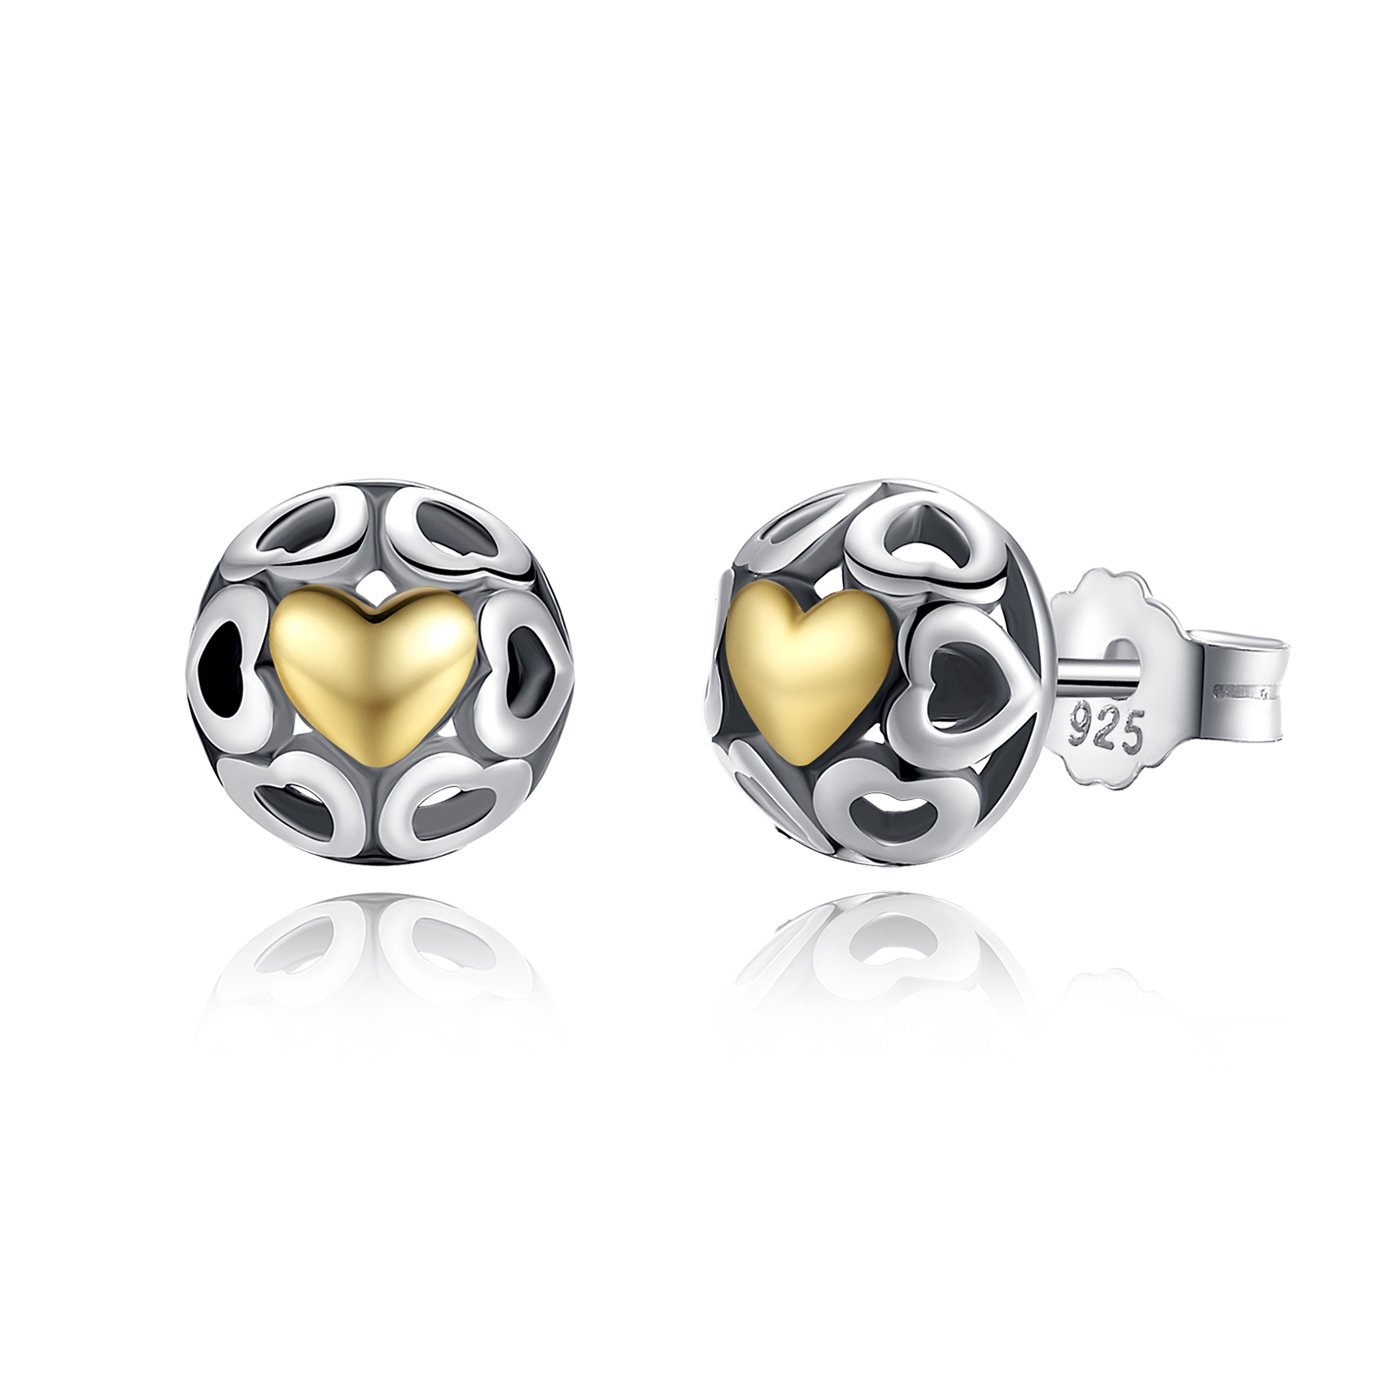 BAMOER 925 Sterling Silver One True Love Stud Earrings Two-tone Romantic Heart Yellow Gold Plated WEUS443+GiftBag2